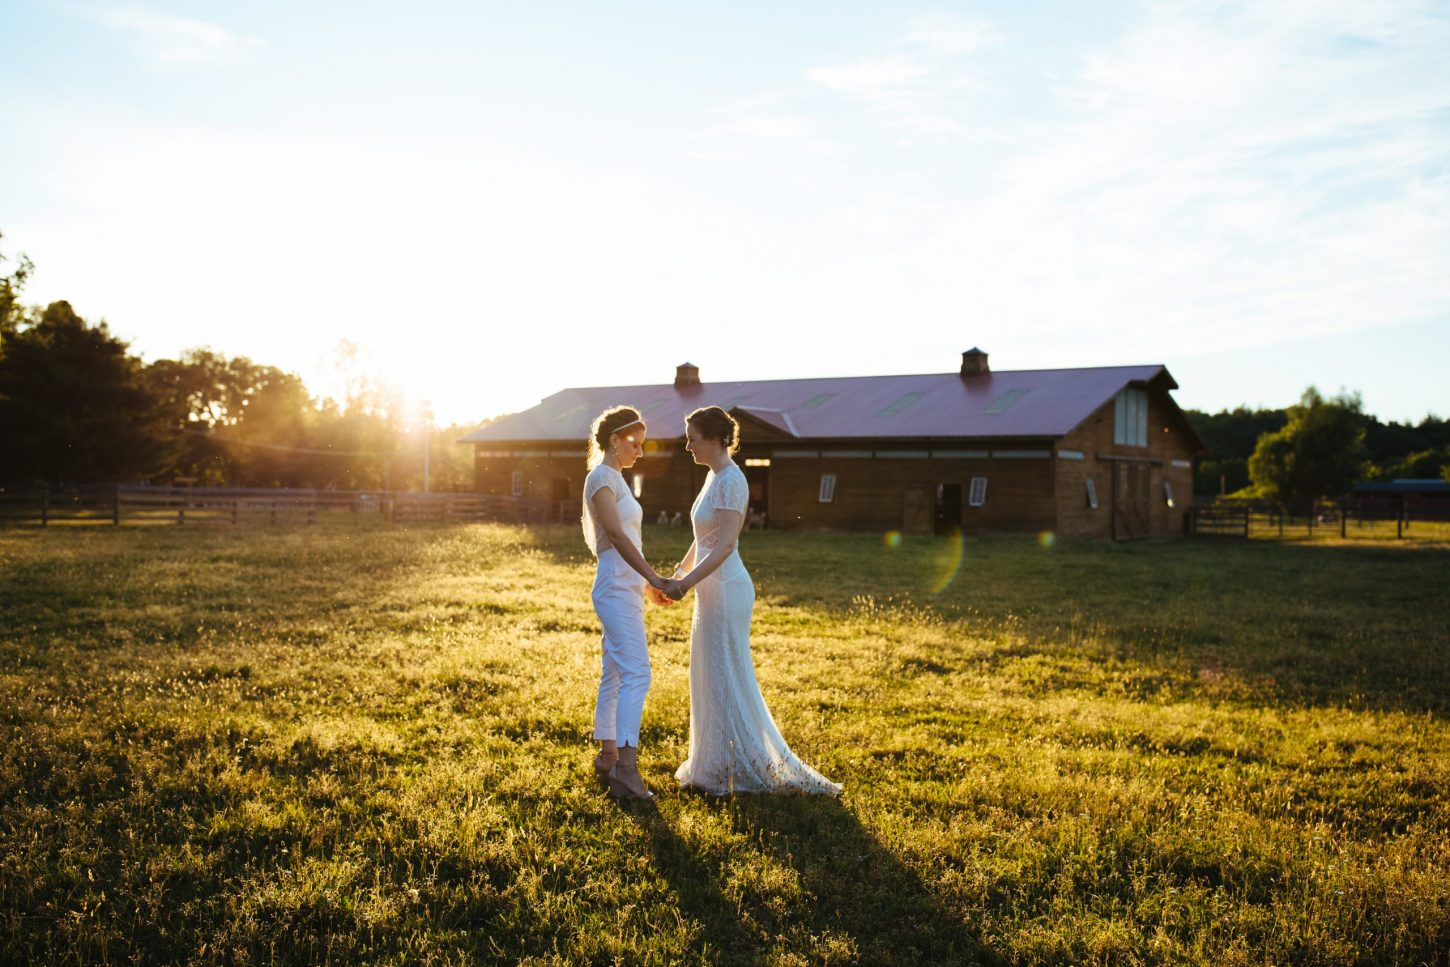 gay vegan wedding at the woodstock farm sanctuary in high falls, new york